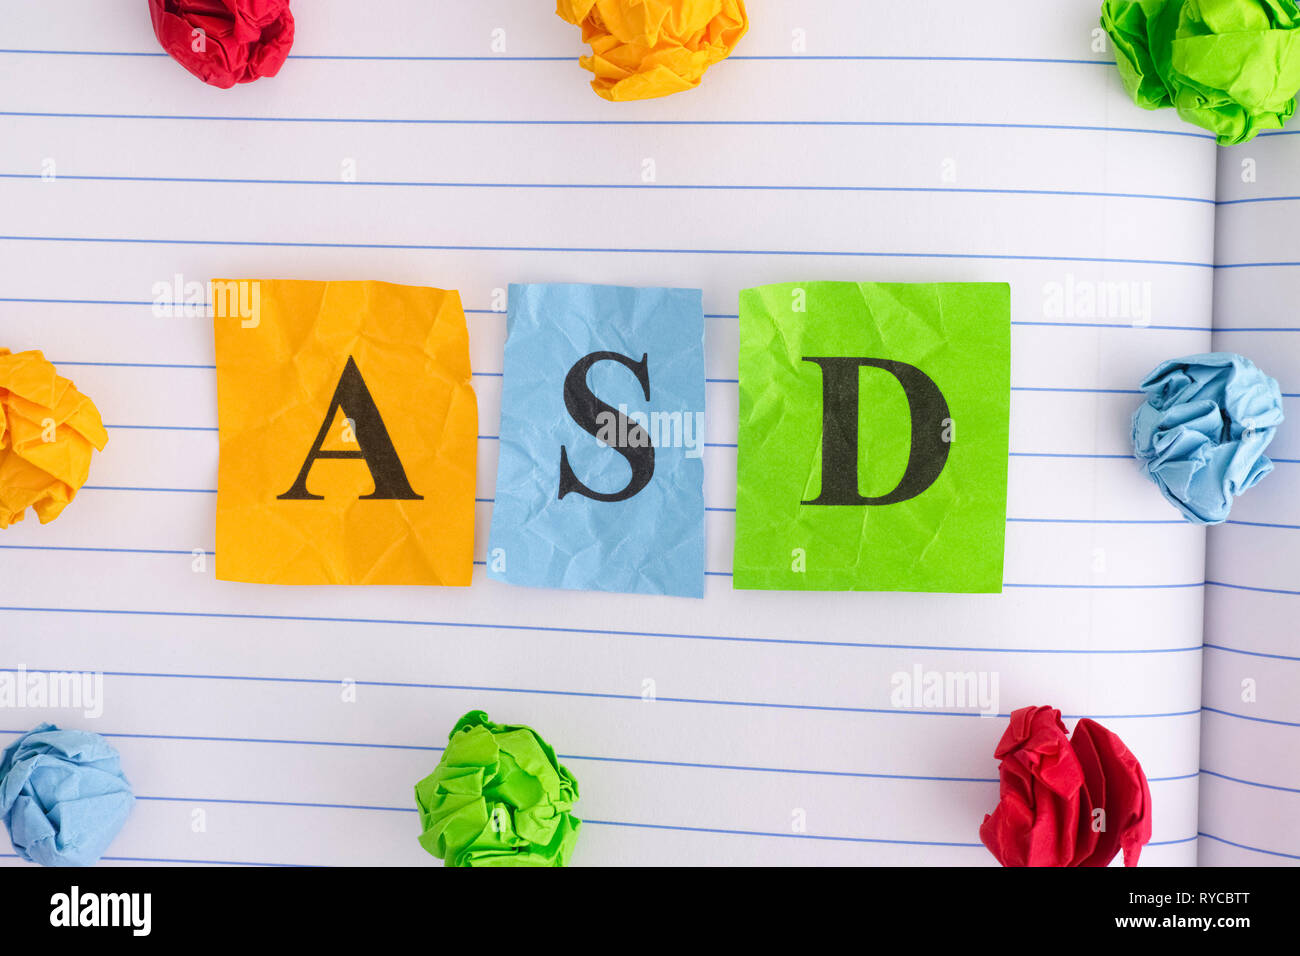 ASD. ASD (Autism spectrum disorder) on notebook sheet with some colorful crumpled paper balls around it. Close up. - Stock Image